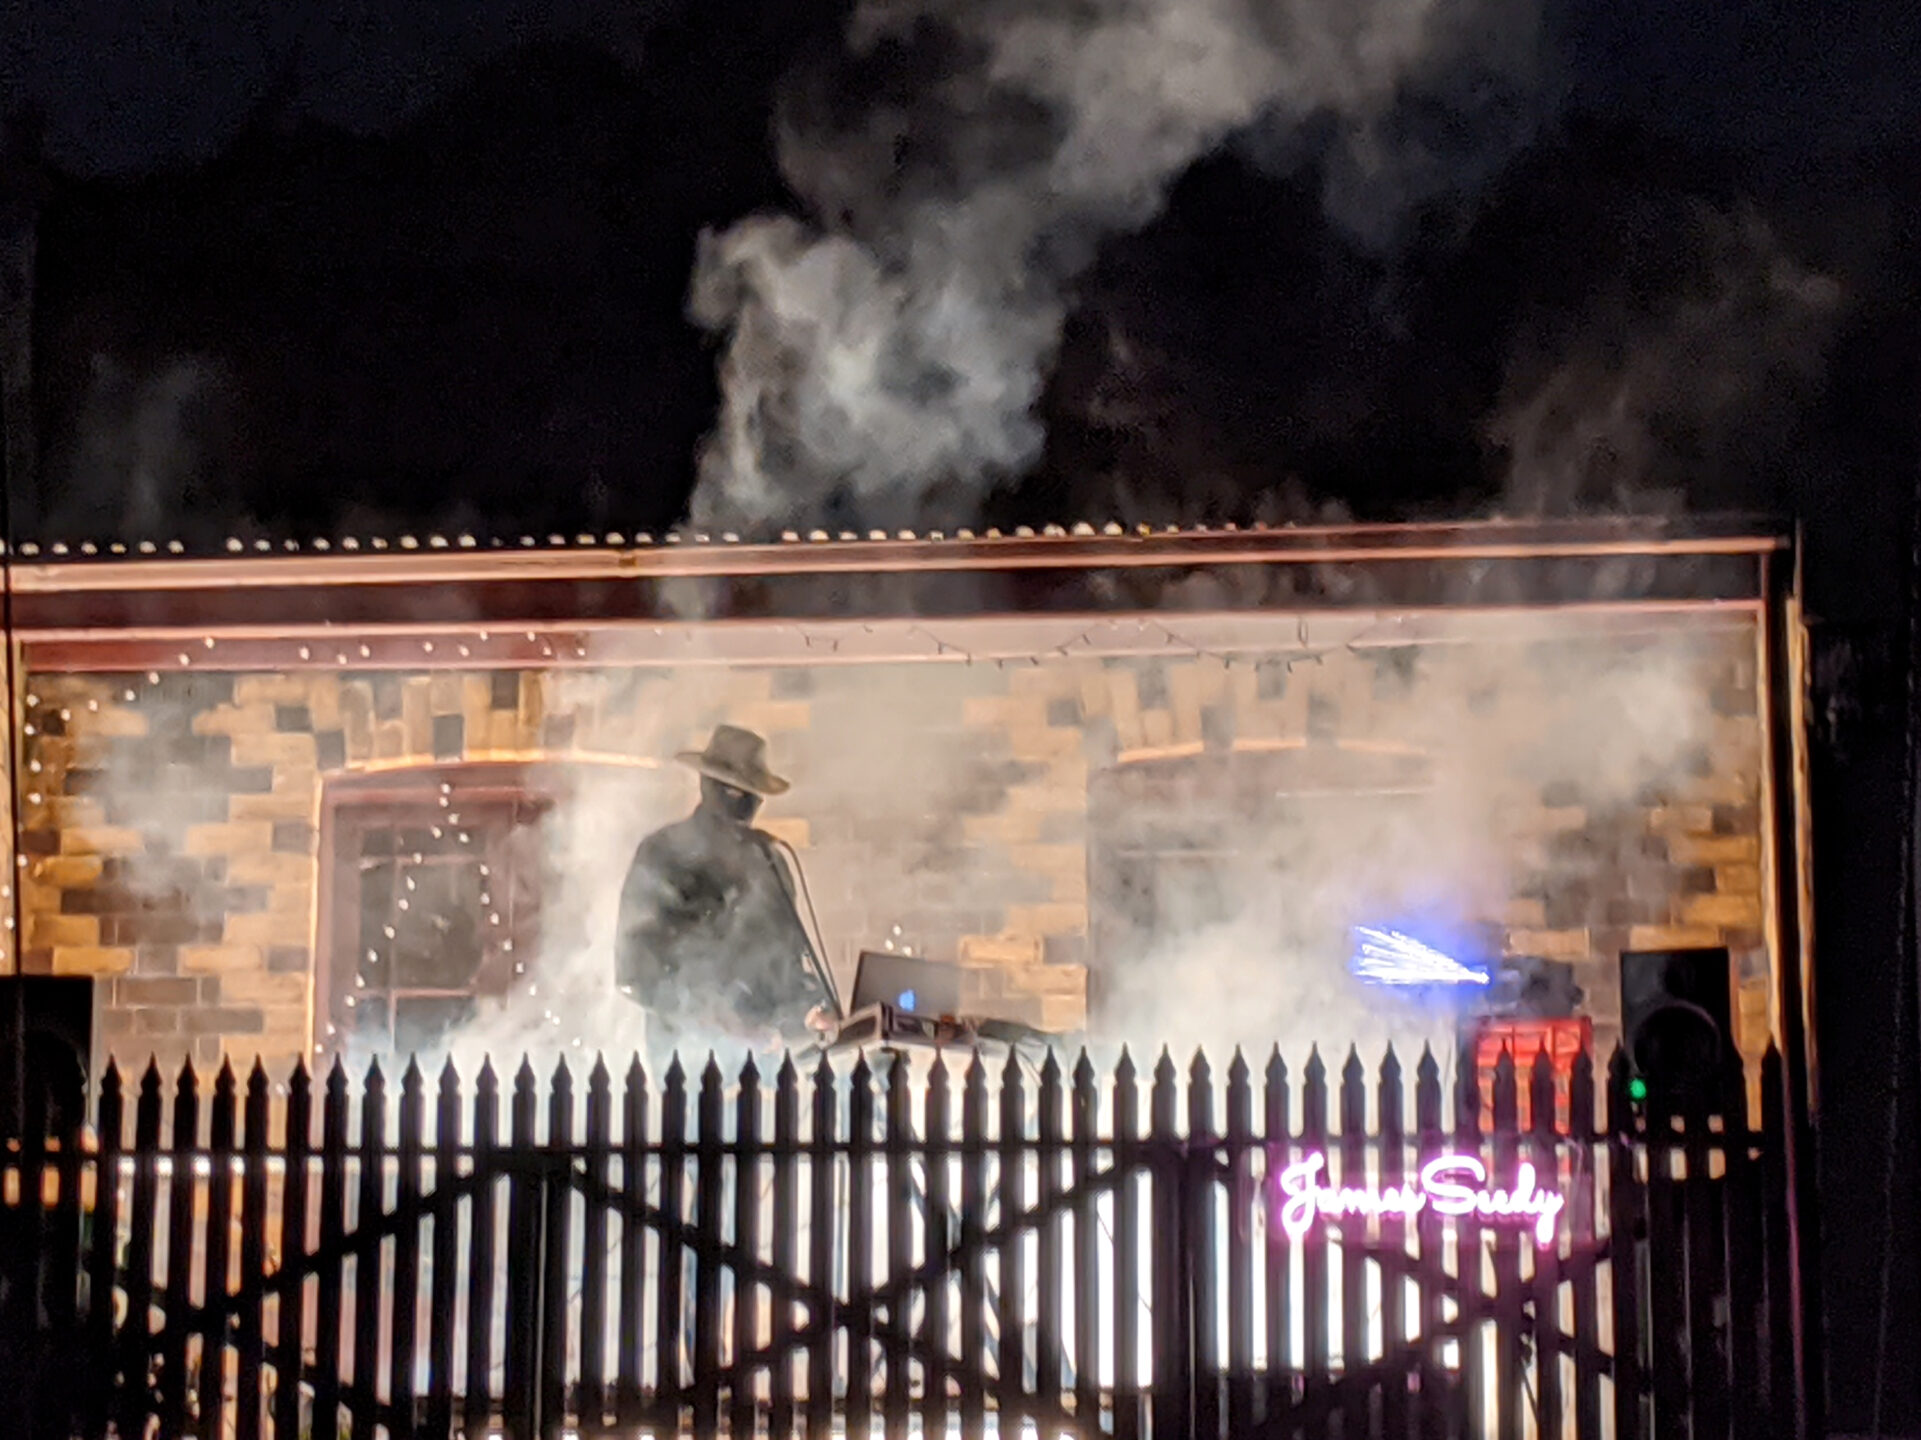 Nighttime. A brick building partially concealed by smoke, with a male hatted figure silhouetted. In the foreground is the profile of a picket fence.